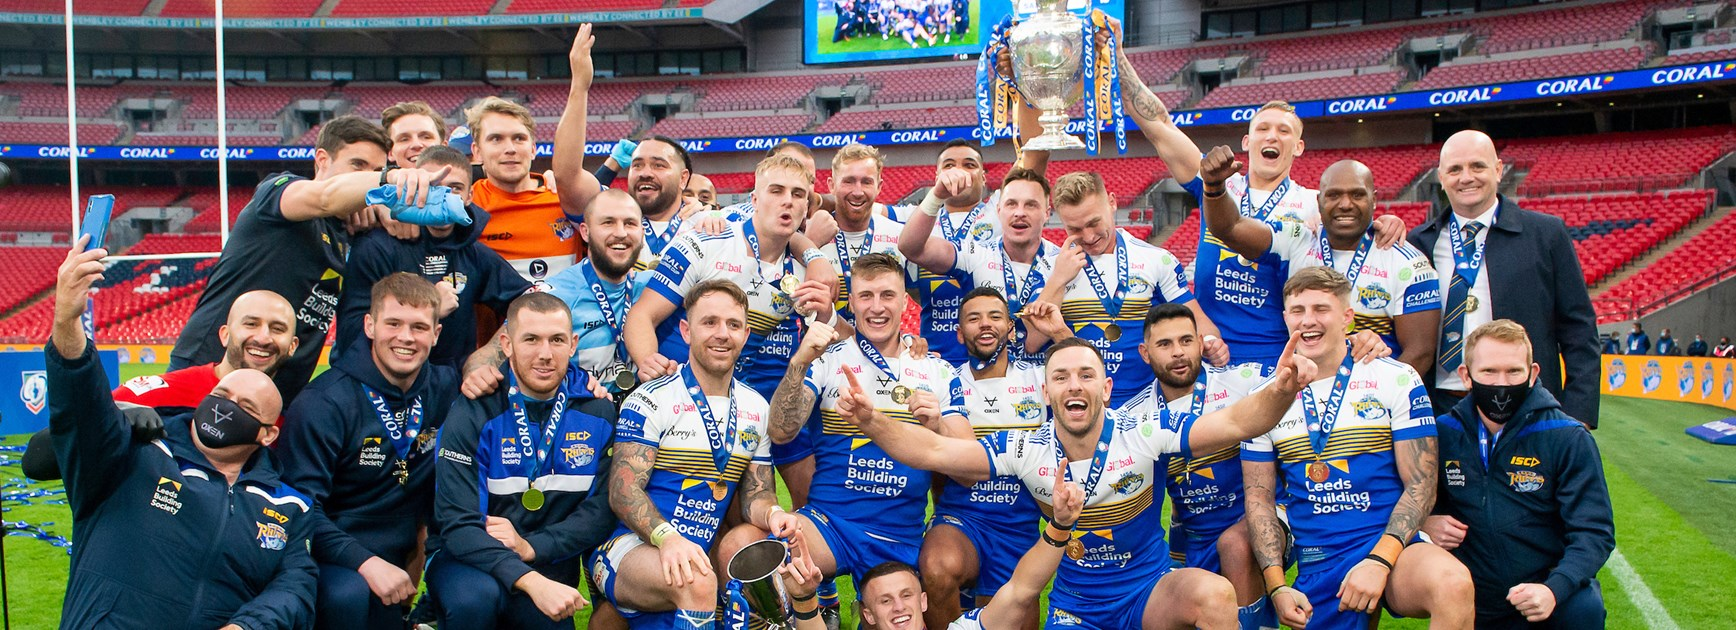 Challenge Cup: Final Richie's voice has Leeds partying all night long